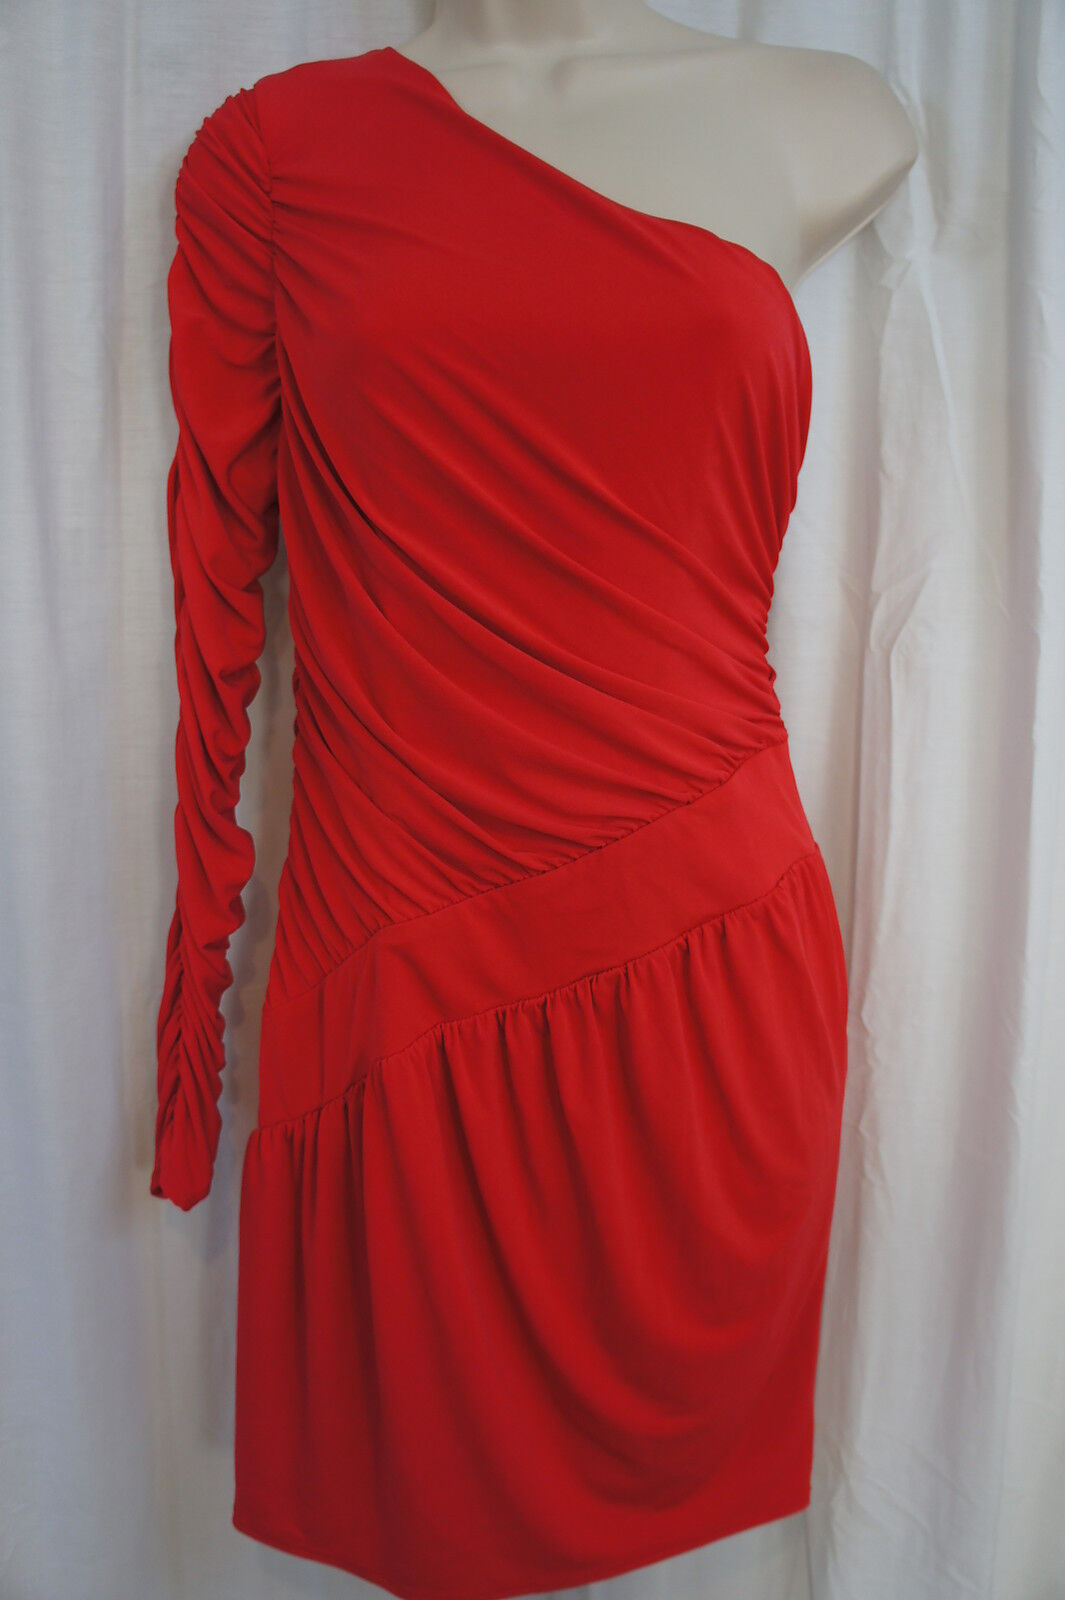 Laundry By Design Dress Sz 6 Melon rot Cocktail One Shoulder Evening Party Wear